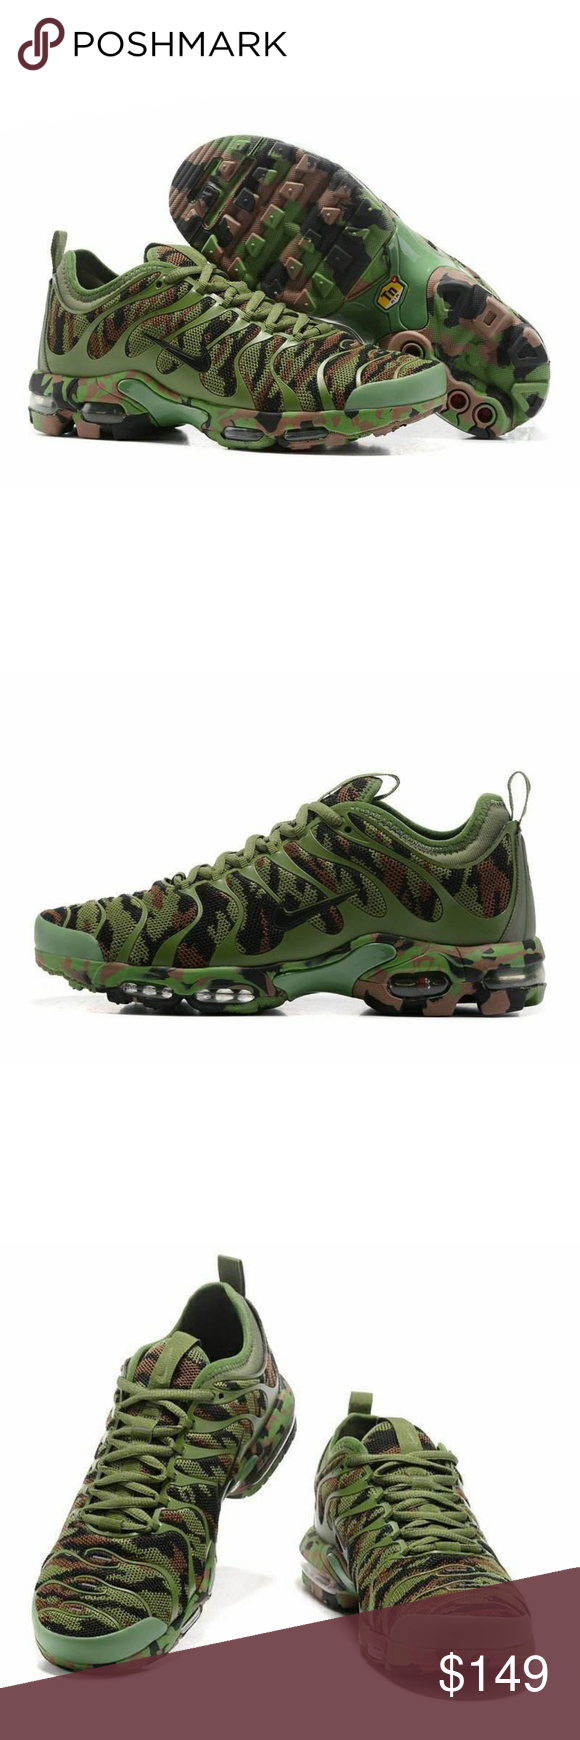 79f4b572956 Nike Air Max Plus TN Ultra Newest Nike Air Max Plus TN Ultra Army Green  Camouflage 898015 022 Men s women s Running Shoes Sneakers Nike Shoes  Sneakers